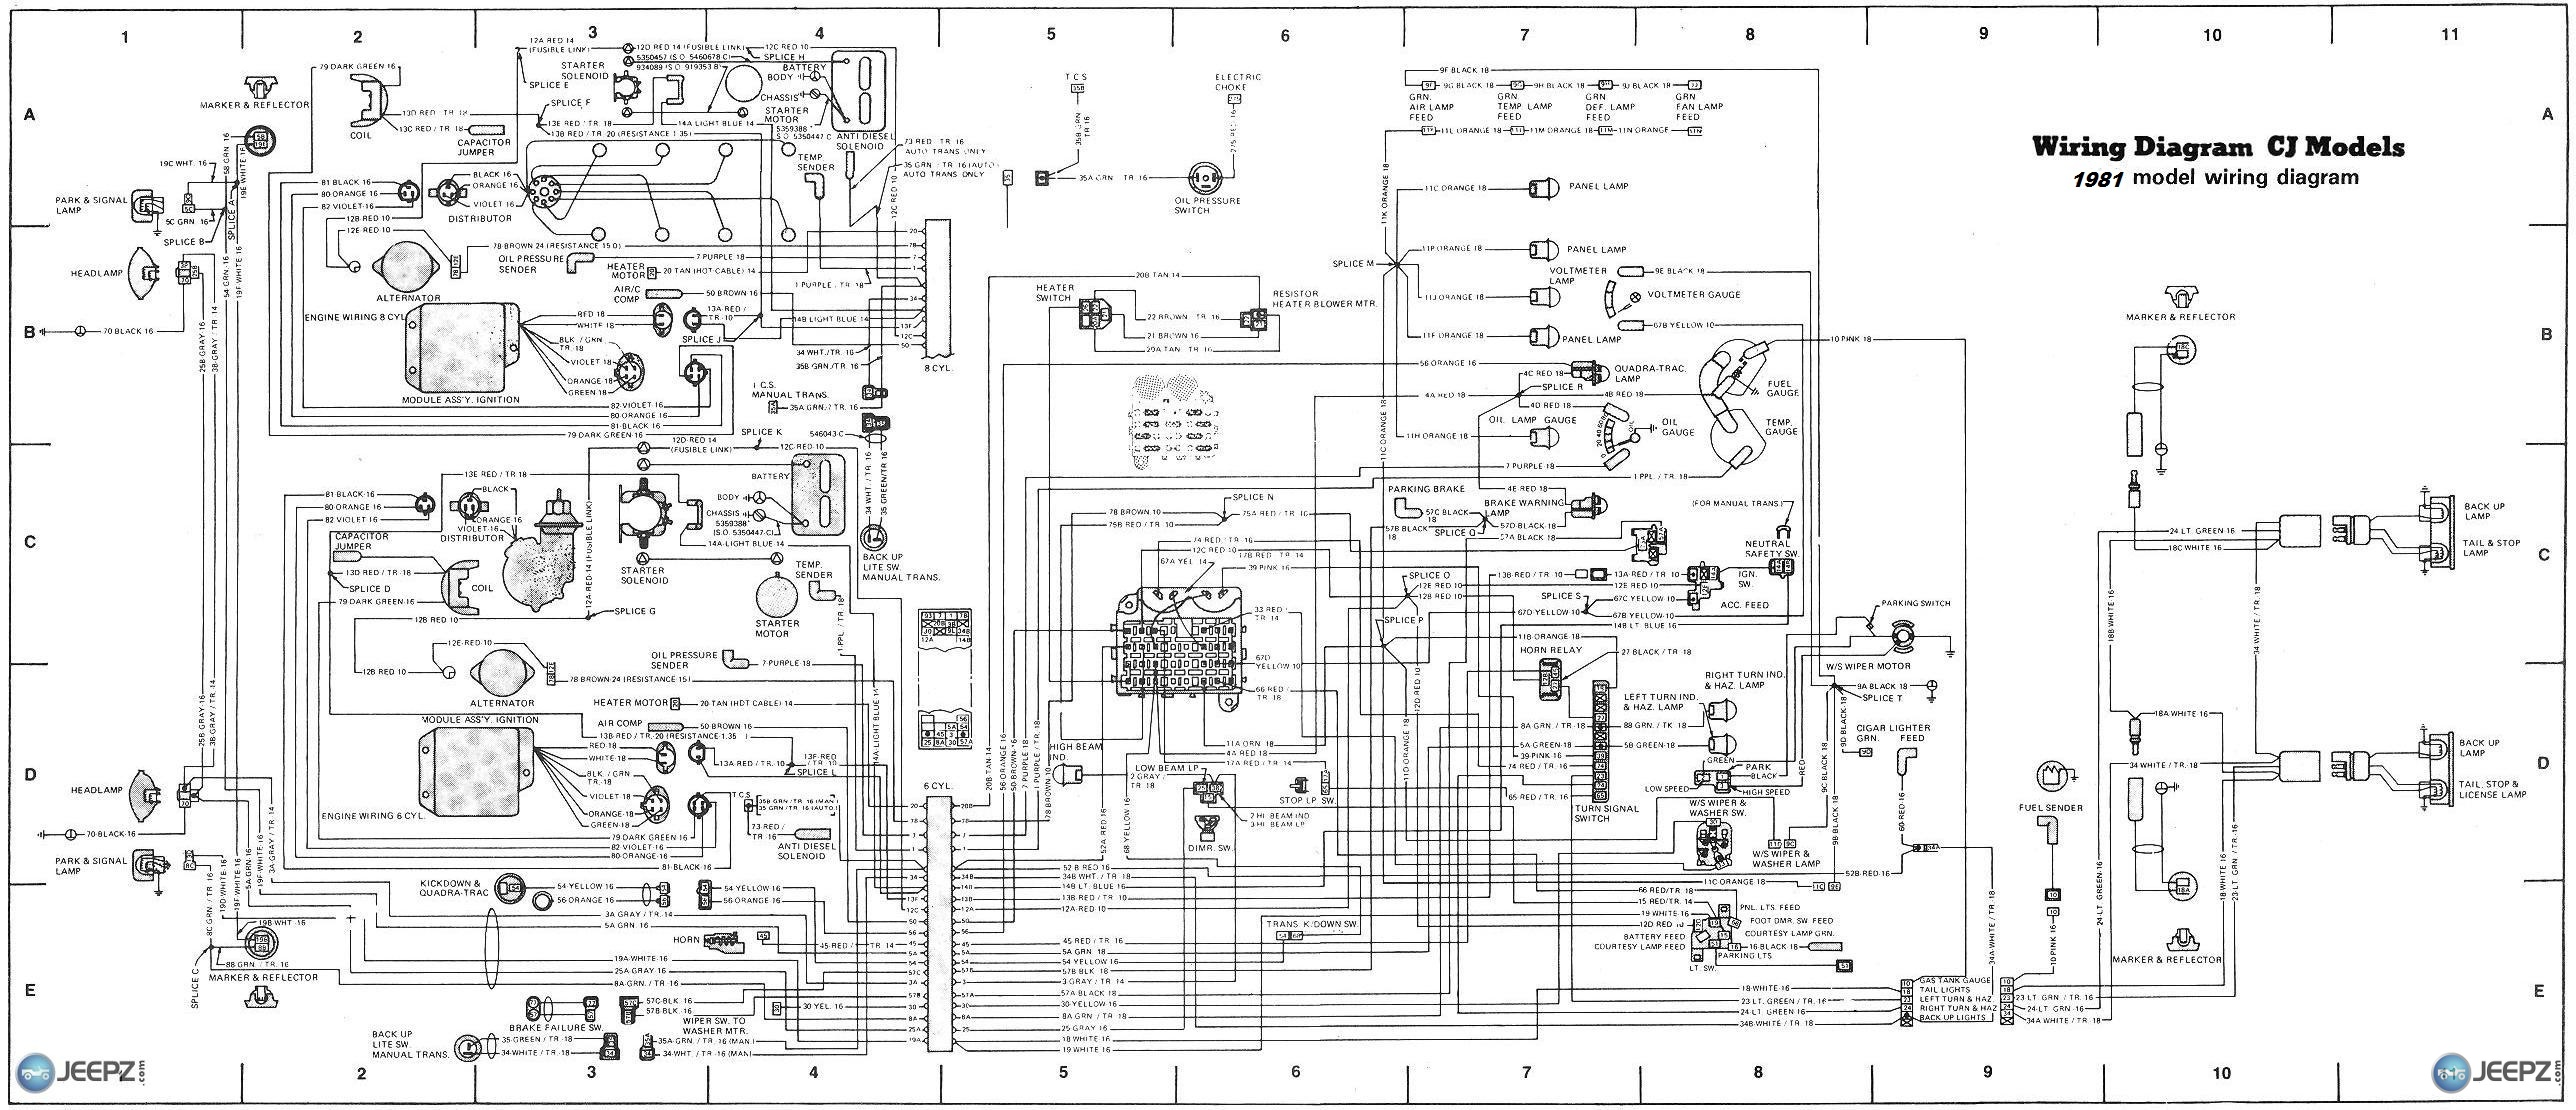 1980 Jeep Cj7 Wiring Diagram Auto Electrical Wiring Diagram CJ7 Wiring- Diagram Large 1976 Jeep Cj7 Wiring Diagram